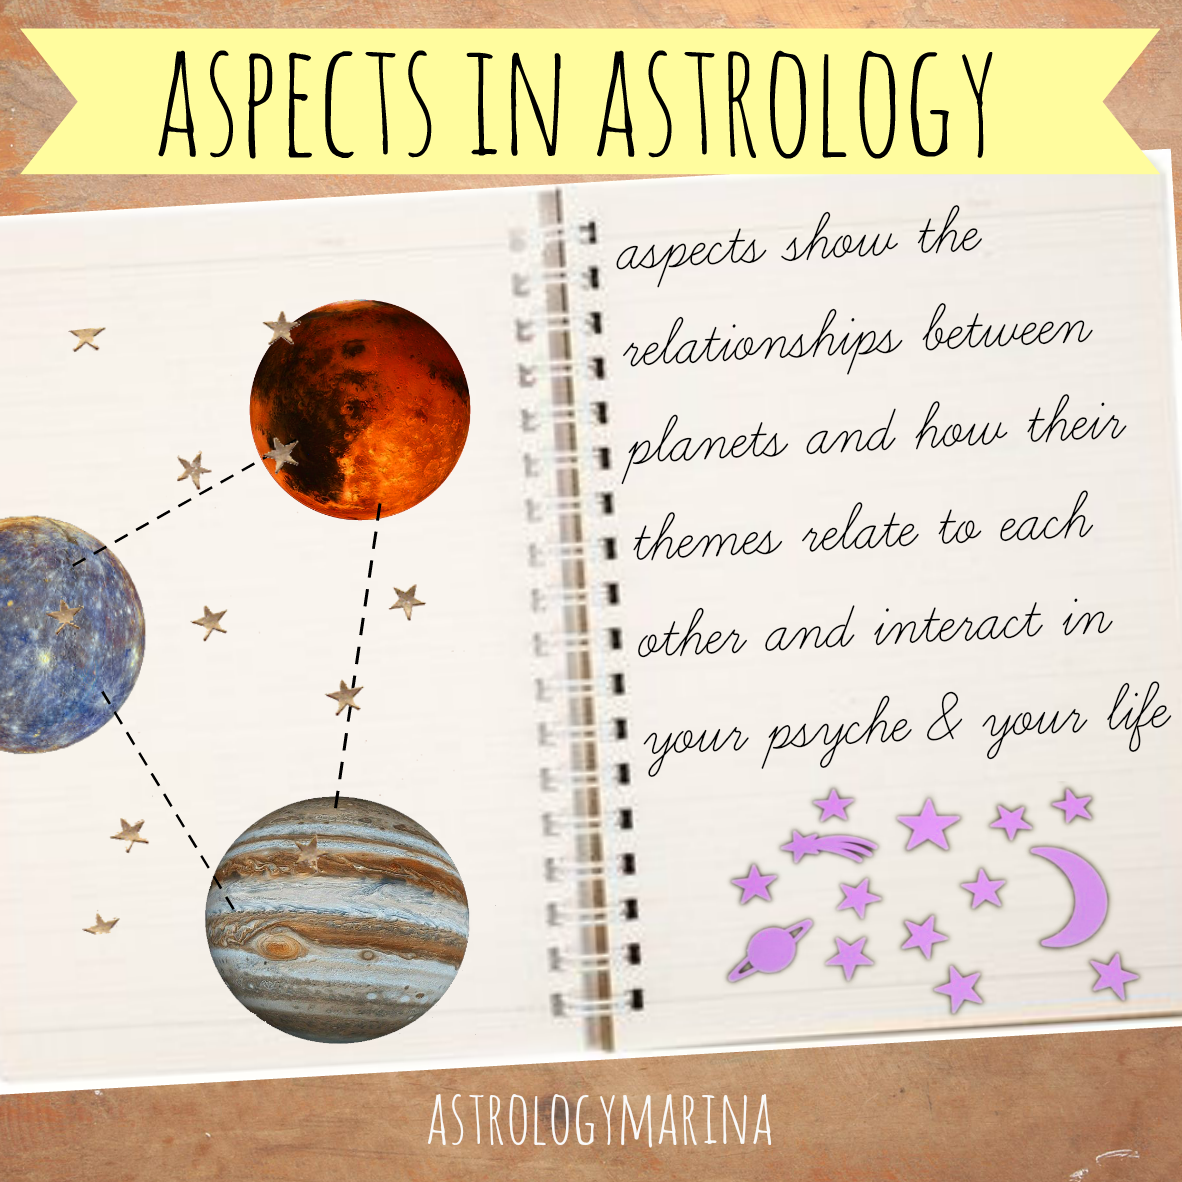 Astrology marina what are aspects in astrology how do i find out this is going to be a quick and simple introduction to the astrological aspects simply to lay the foundation of basic knowledge because nvjuhfo Image collections